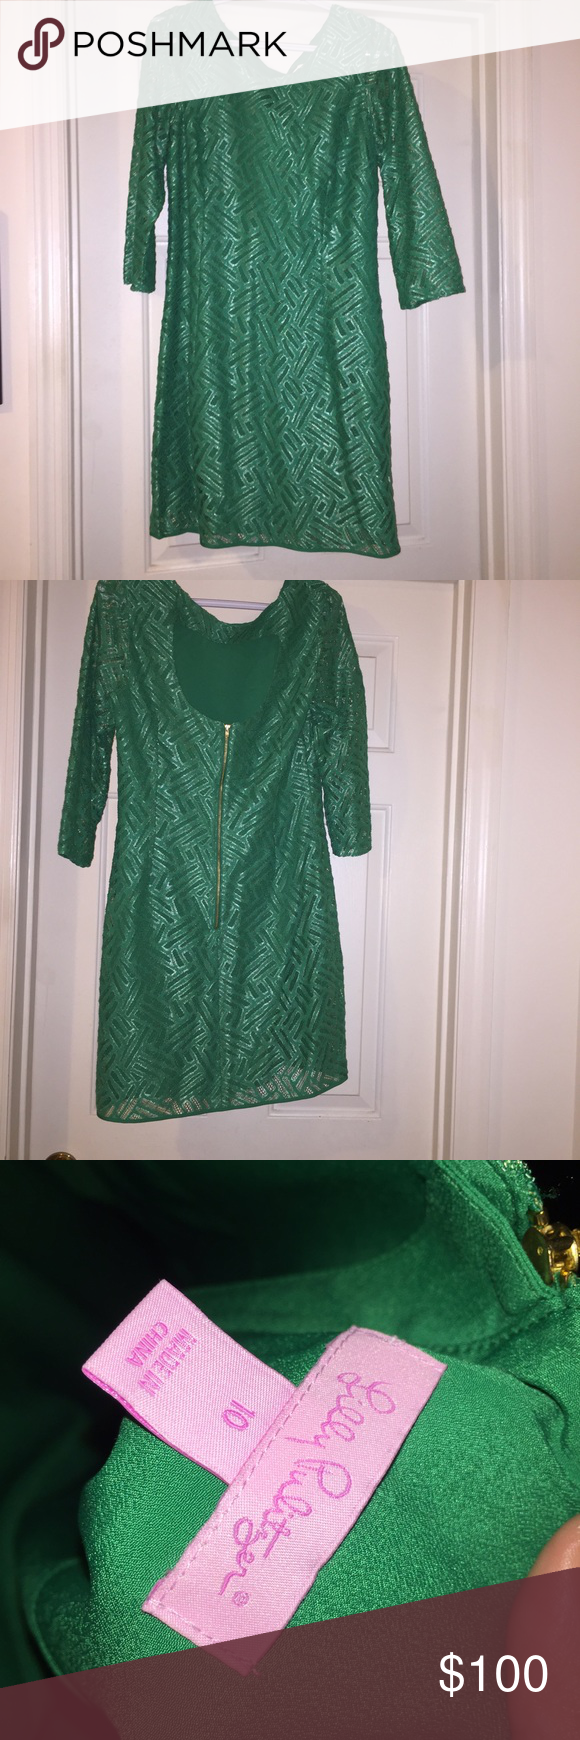 Lilly Pulitzer Camelia Metallic Lace Sheath Dress! Lilly Pulitzer Camelia Metallic Lace Sheath Dress! Worn Once, perfect Condition!! Lilly Pulitzer Dresses